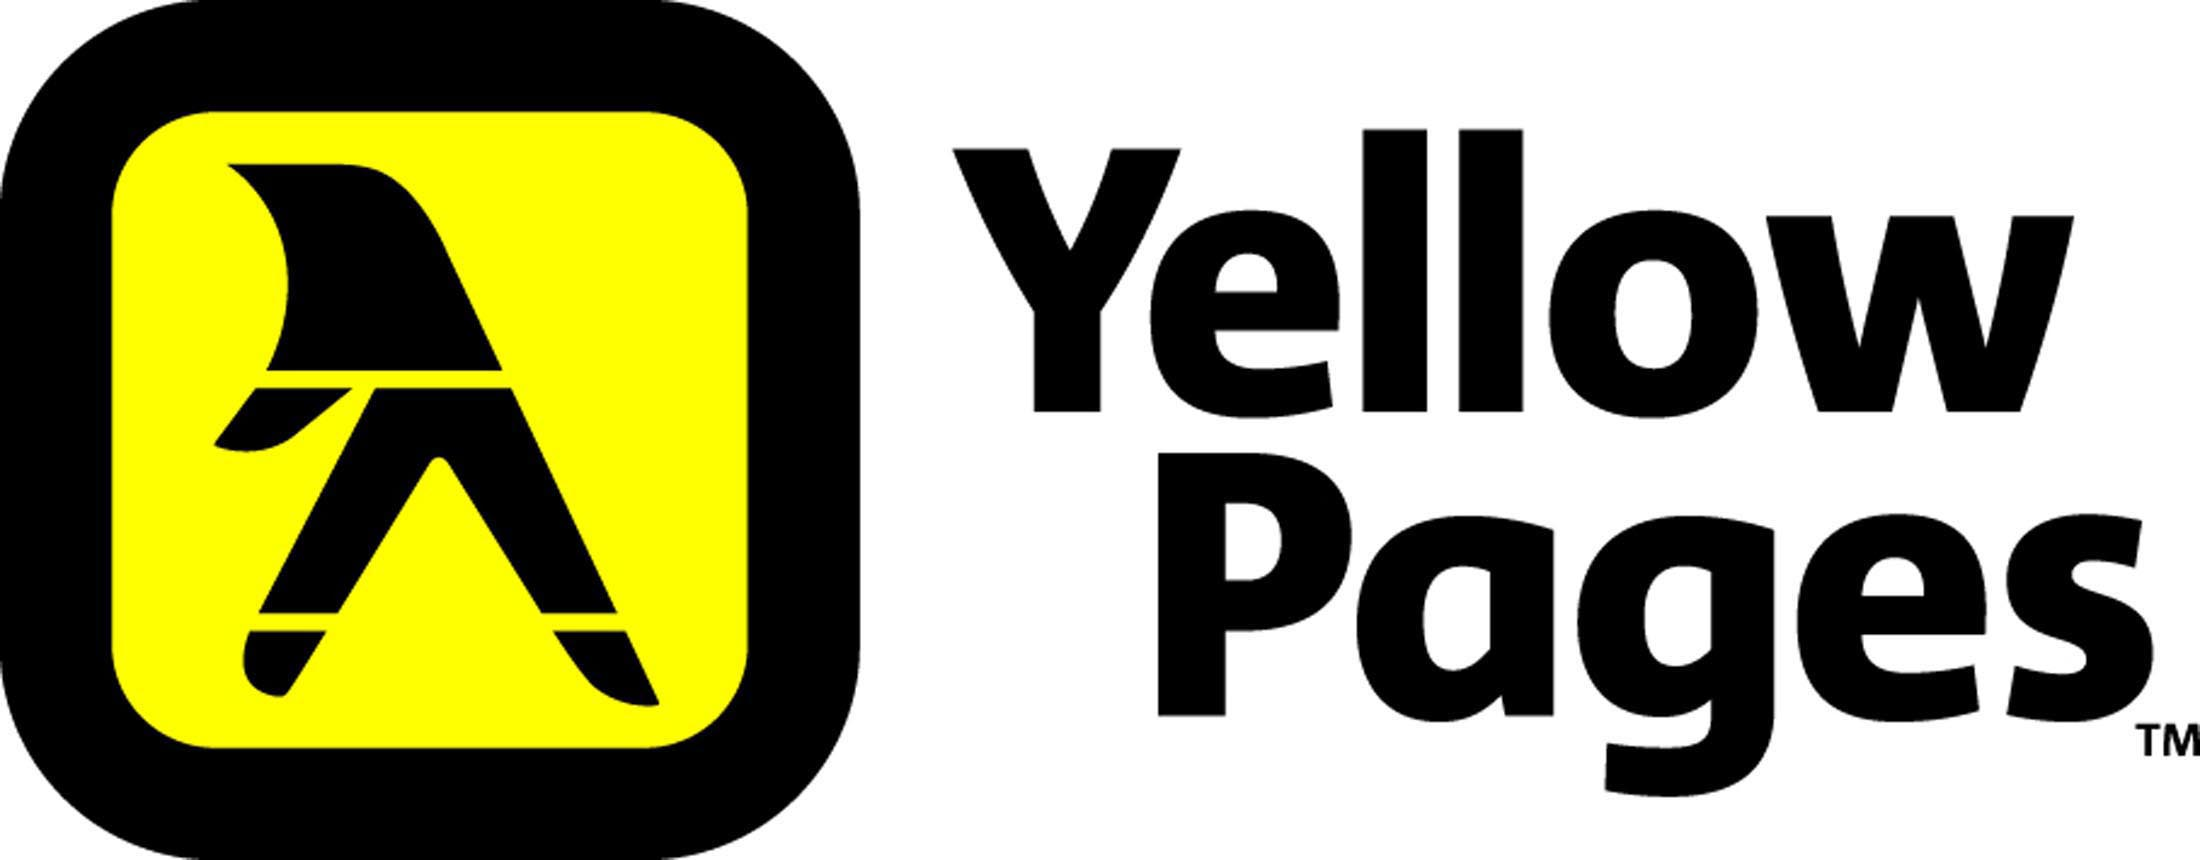 yellow-pages-logo.jpg